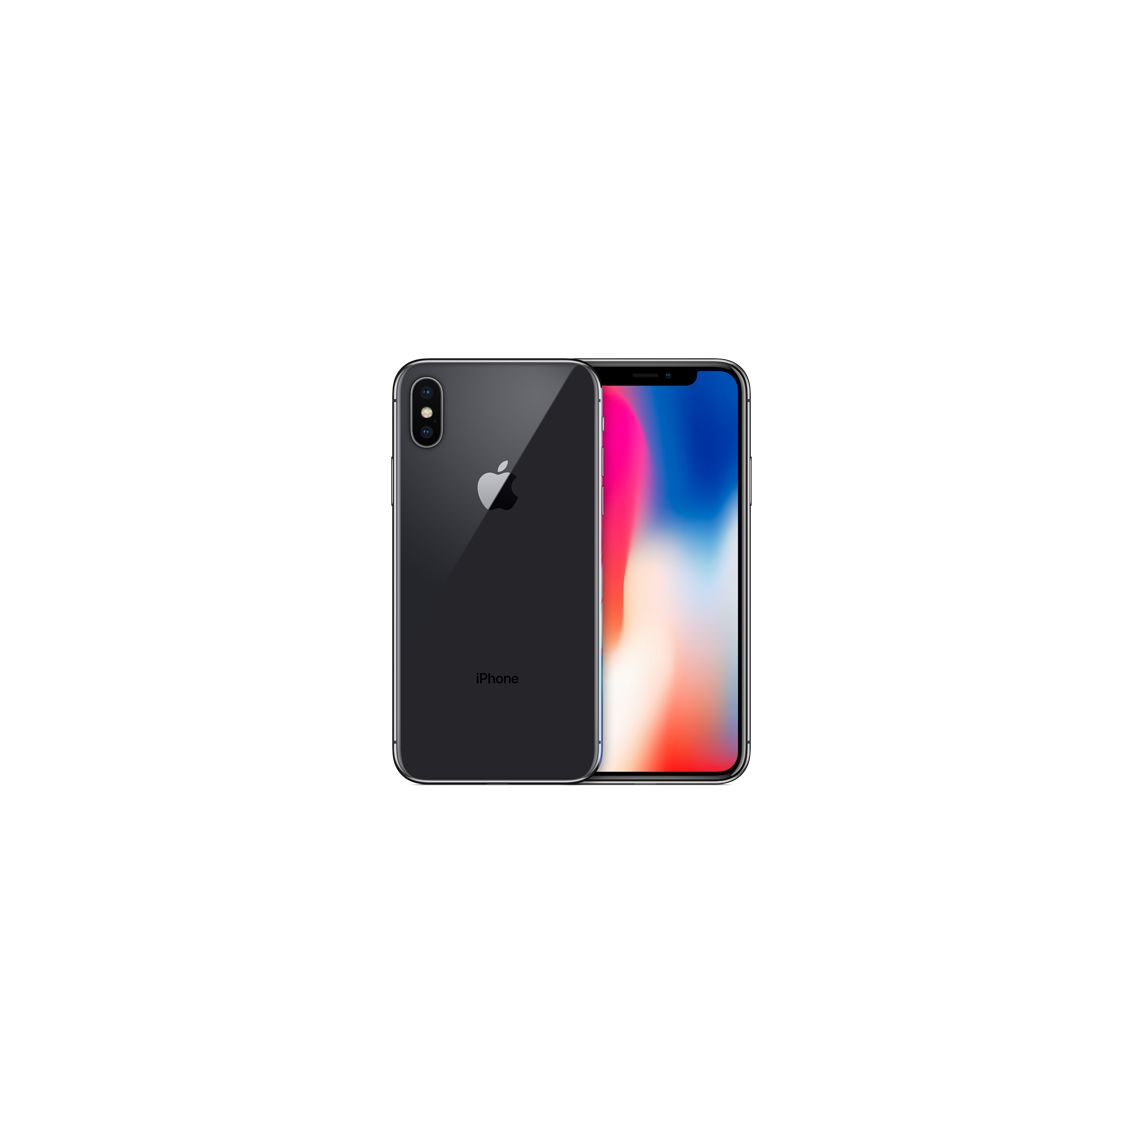 294a08a5bb27a9 Refurbished iPhone X 256GB - Space Gray (Unlocked) - Apple